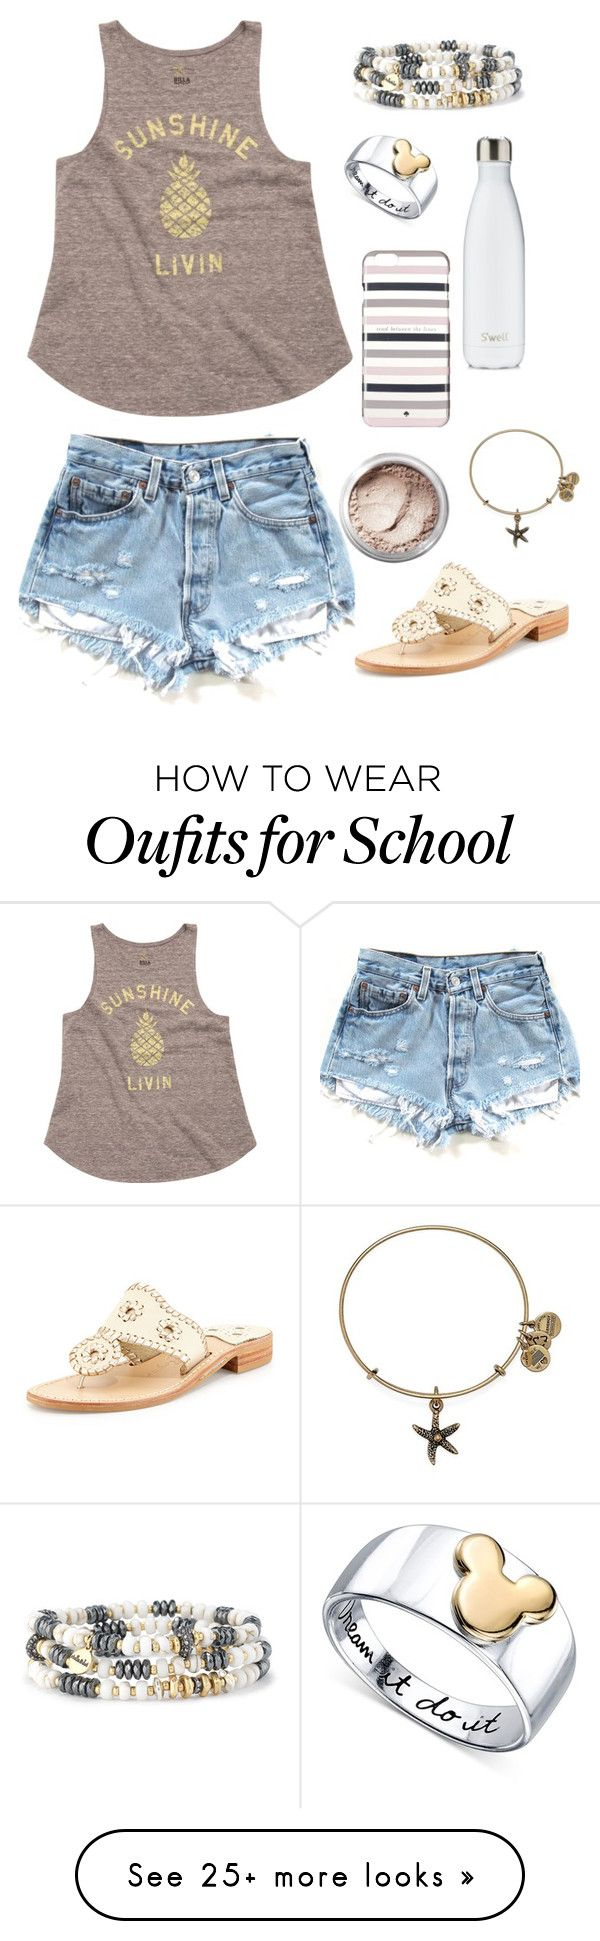 """""""Last Day of School Tomorrow!"""" by cwilkween on Polyvore featuring Billabong, Stella & Dot, Disney, S'well, Kate Spade, Jack Rogers, Alex and Ani, Bare Escentuals and cwilkween"""